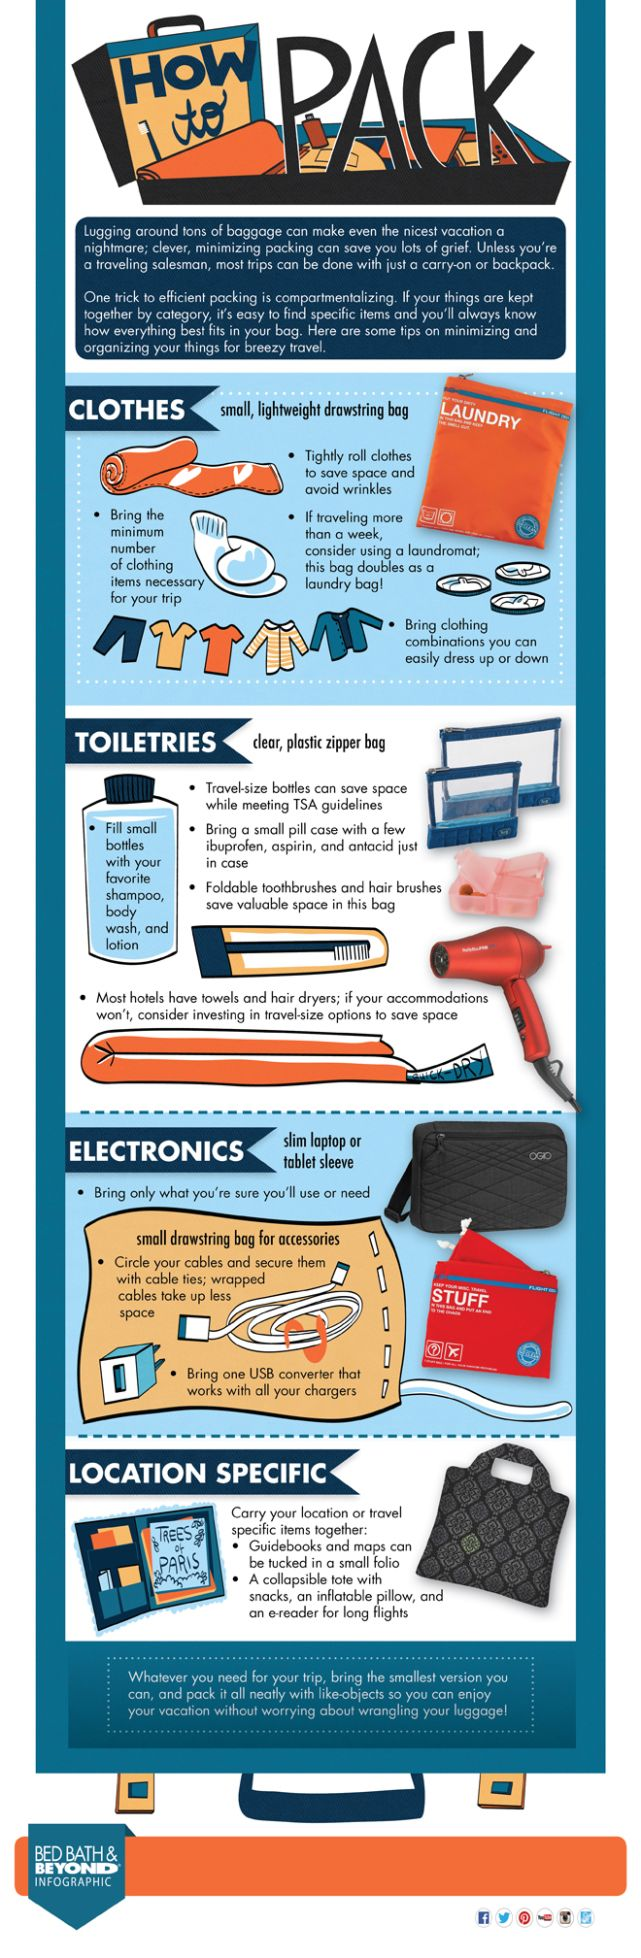 how to pack for travel Infographic